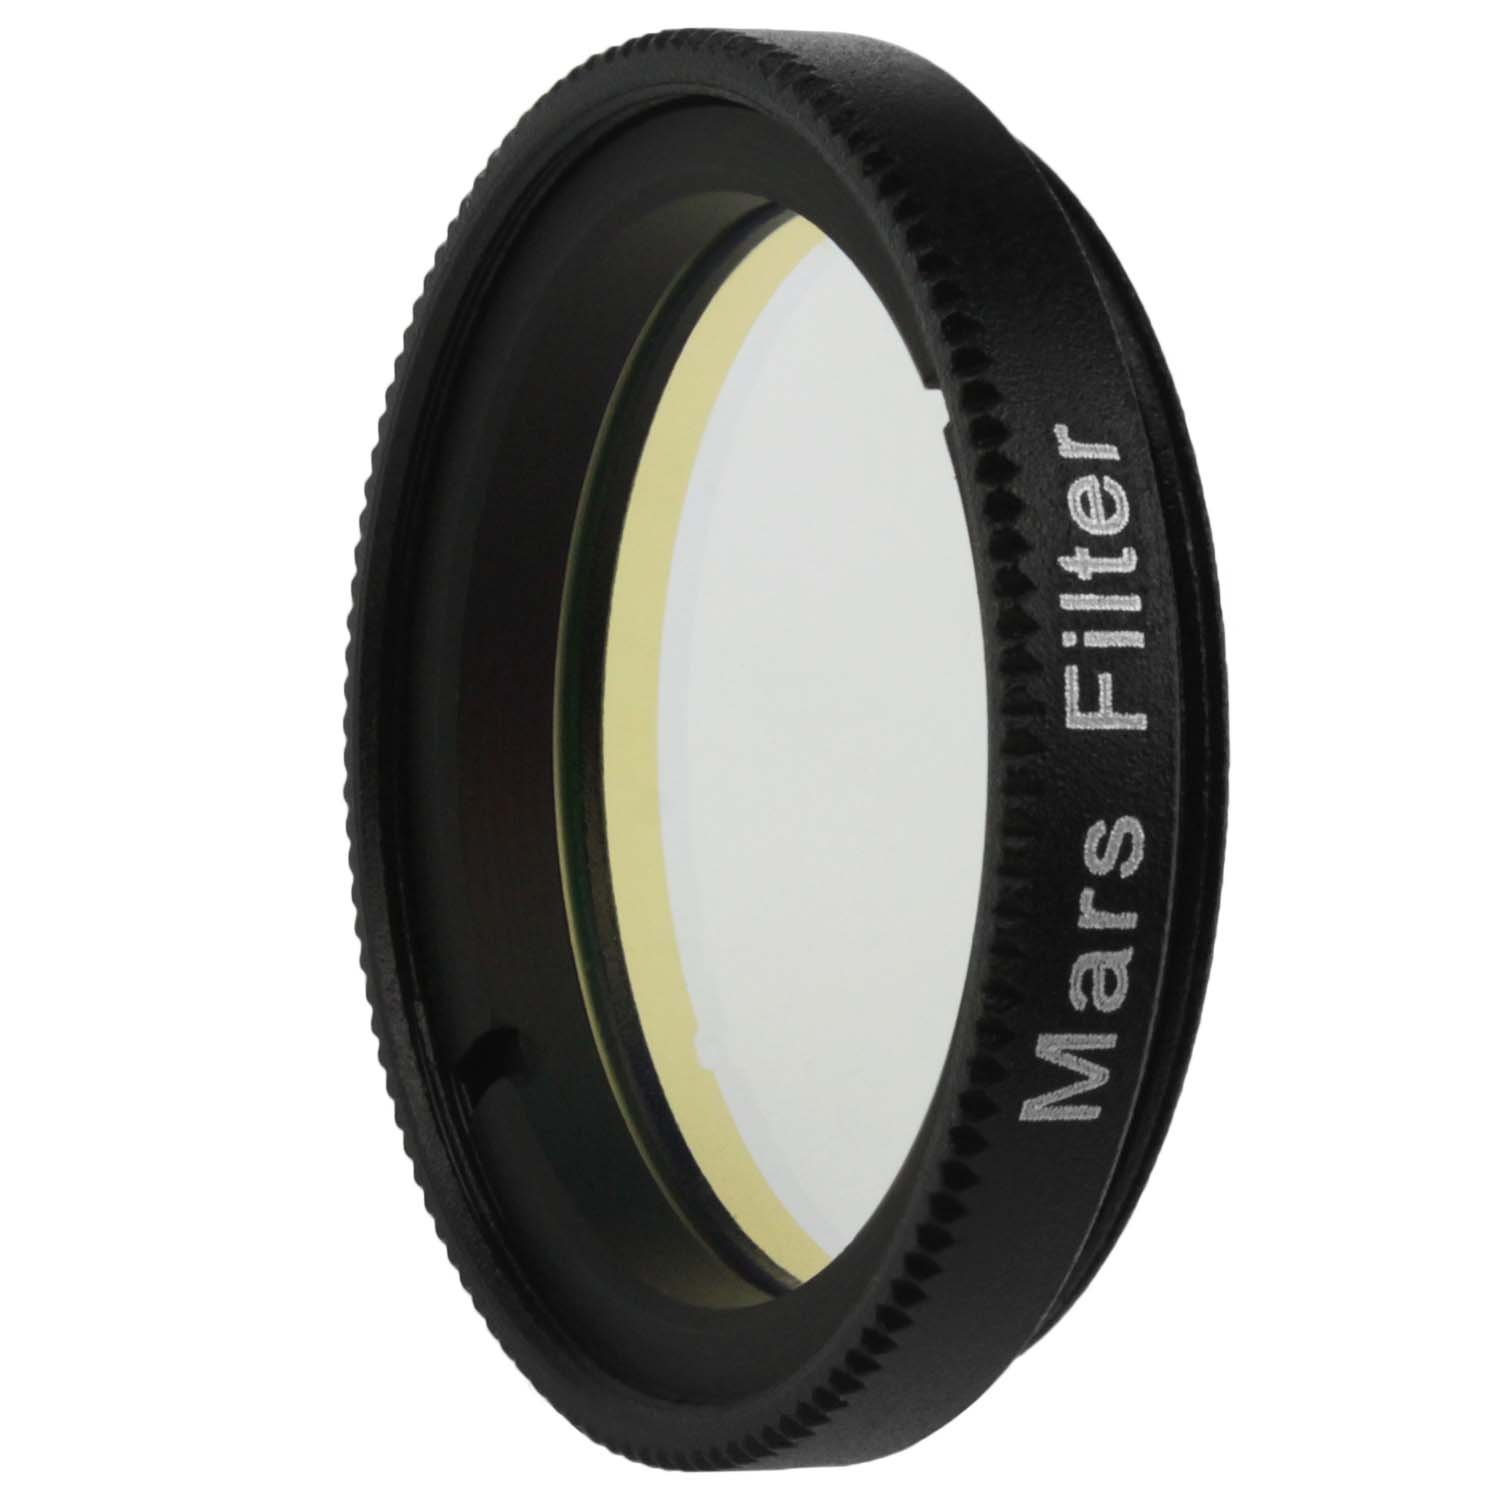 Astromania 1.25'' Mars Observing Eyepiece Filter - Prepare for July's Opposition - Designed to ferret out resolution of Martian polar regions, highland mountain ranges, and expansive mare flatlands